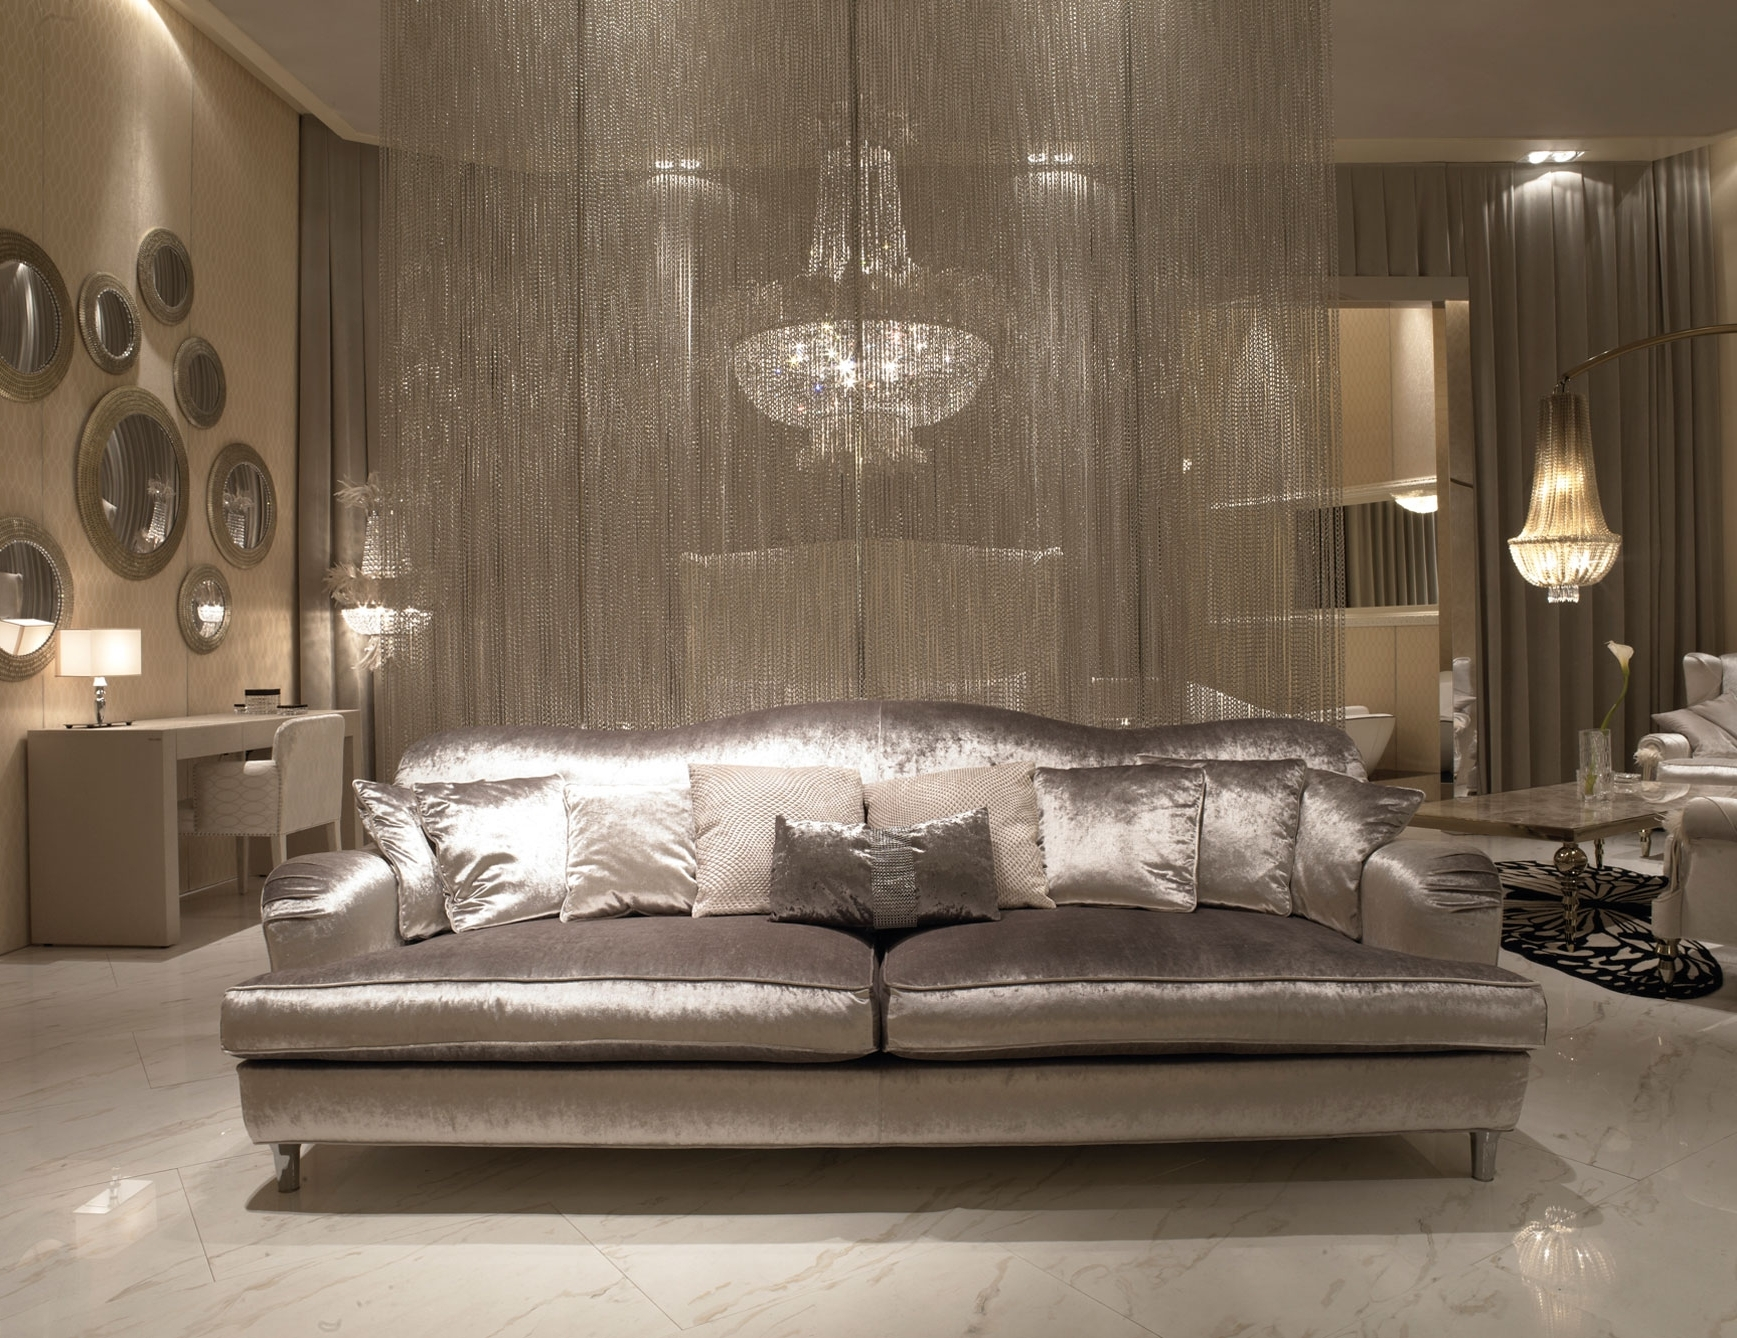 Fashionable Luxury Sofas In Nella Vetrina Visionnaire Ipe Cavalli Ginevra Luxury Italian Sofa (View 2 of 20)